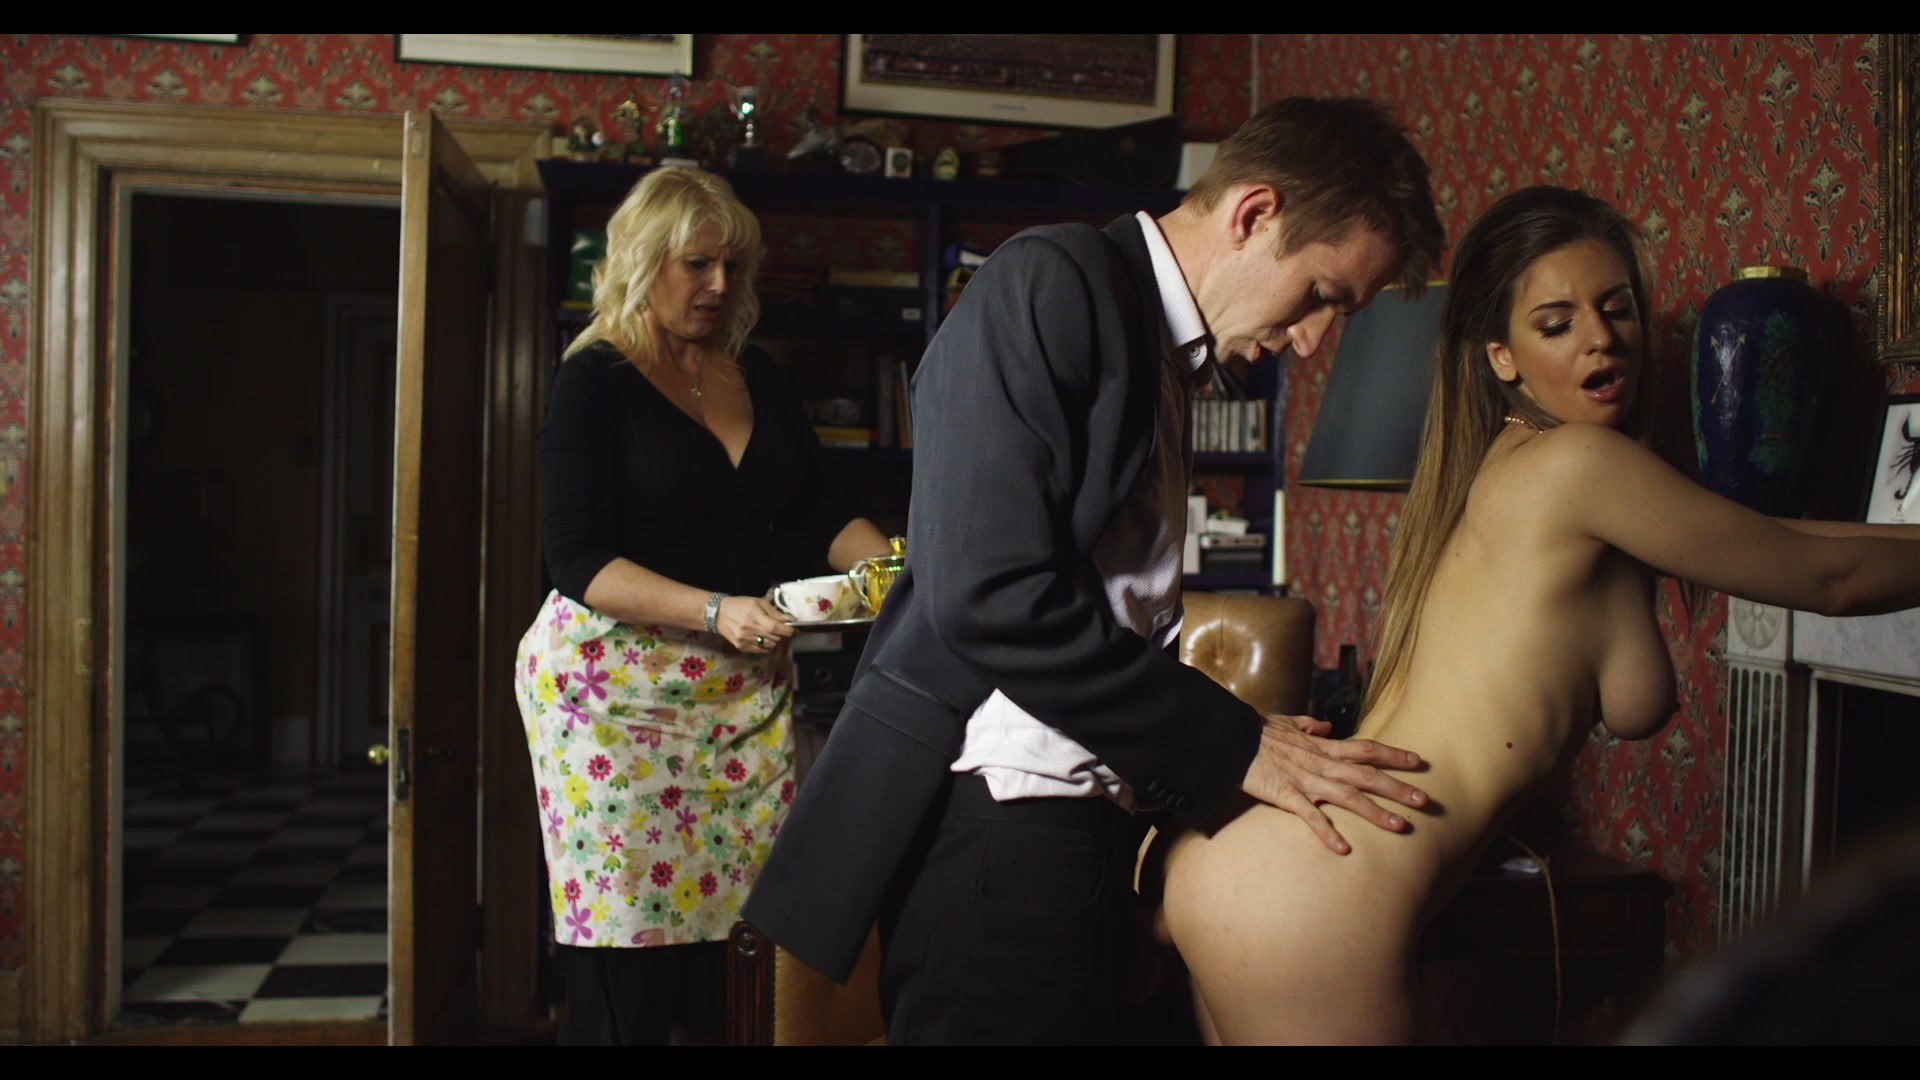 Scene with Stella Cox - image 4 out of 20